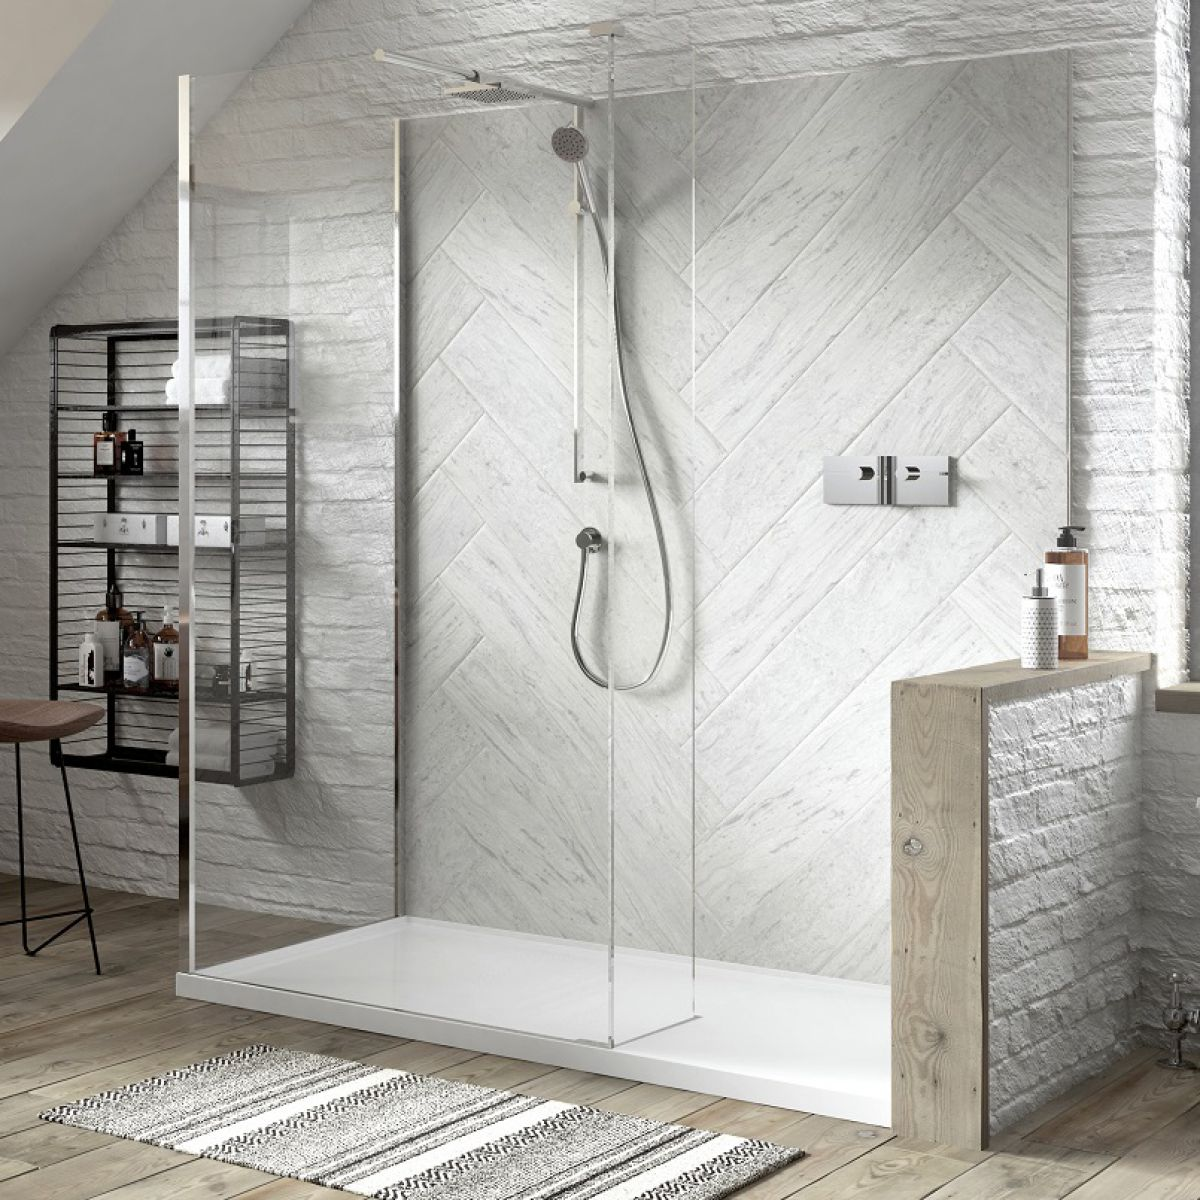 Featured In The Image Above Matki Boutique Walk In Shower Enclosure